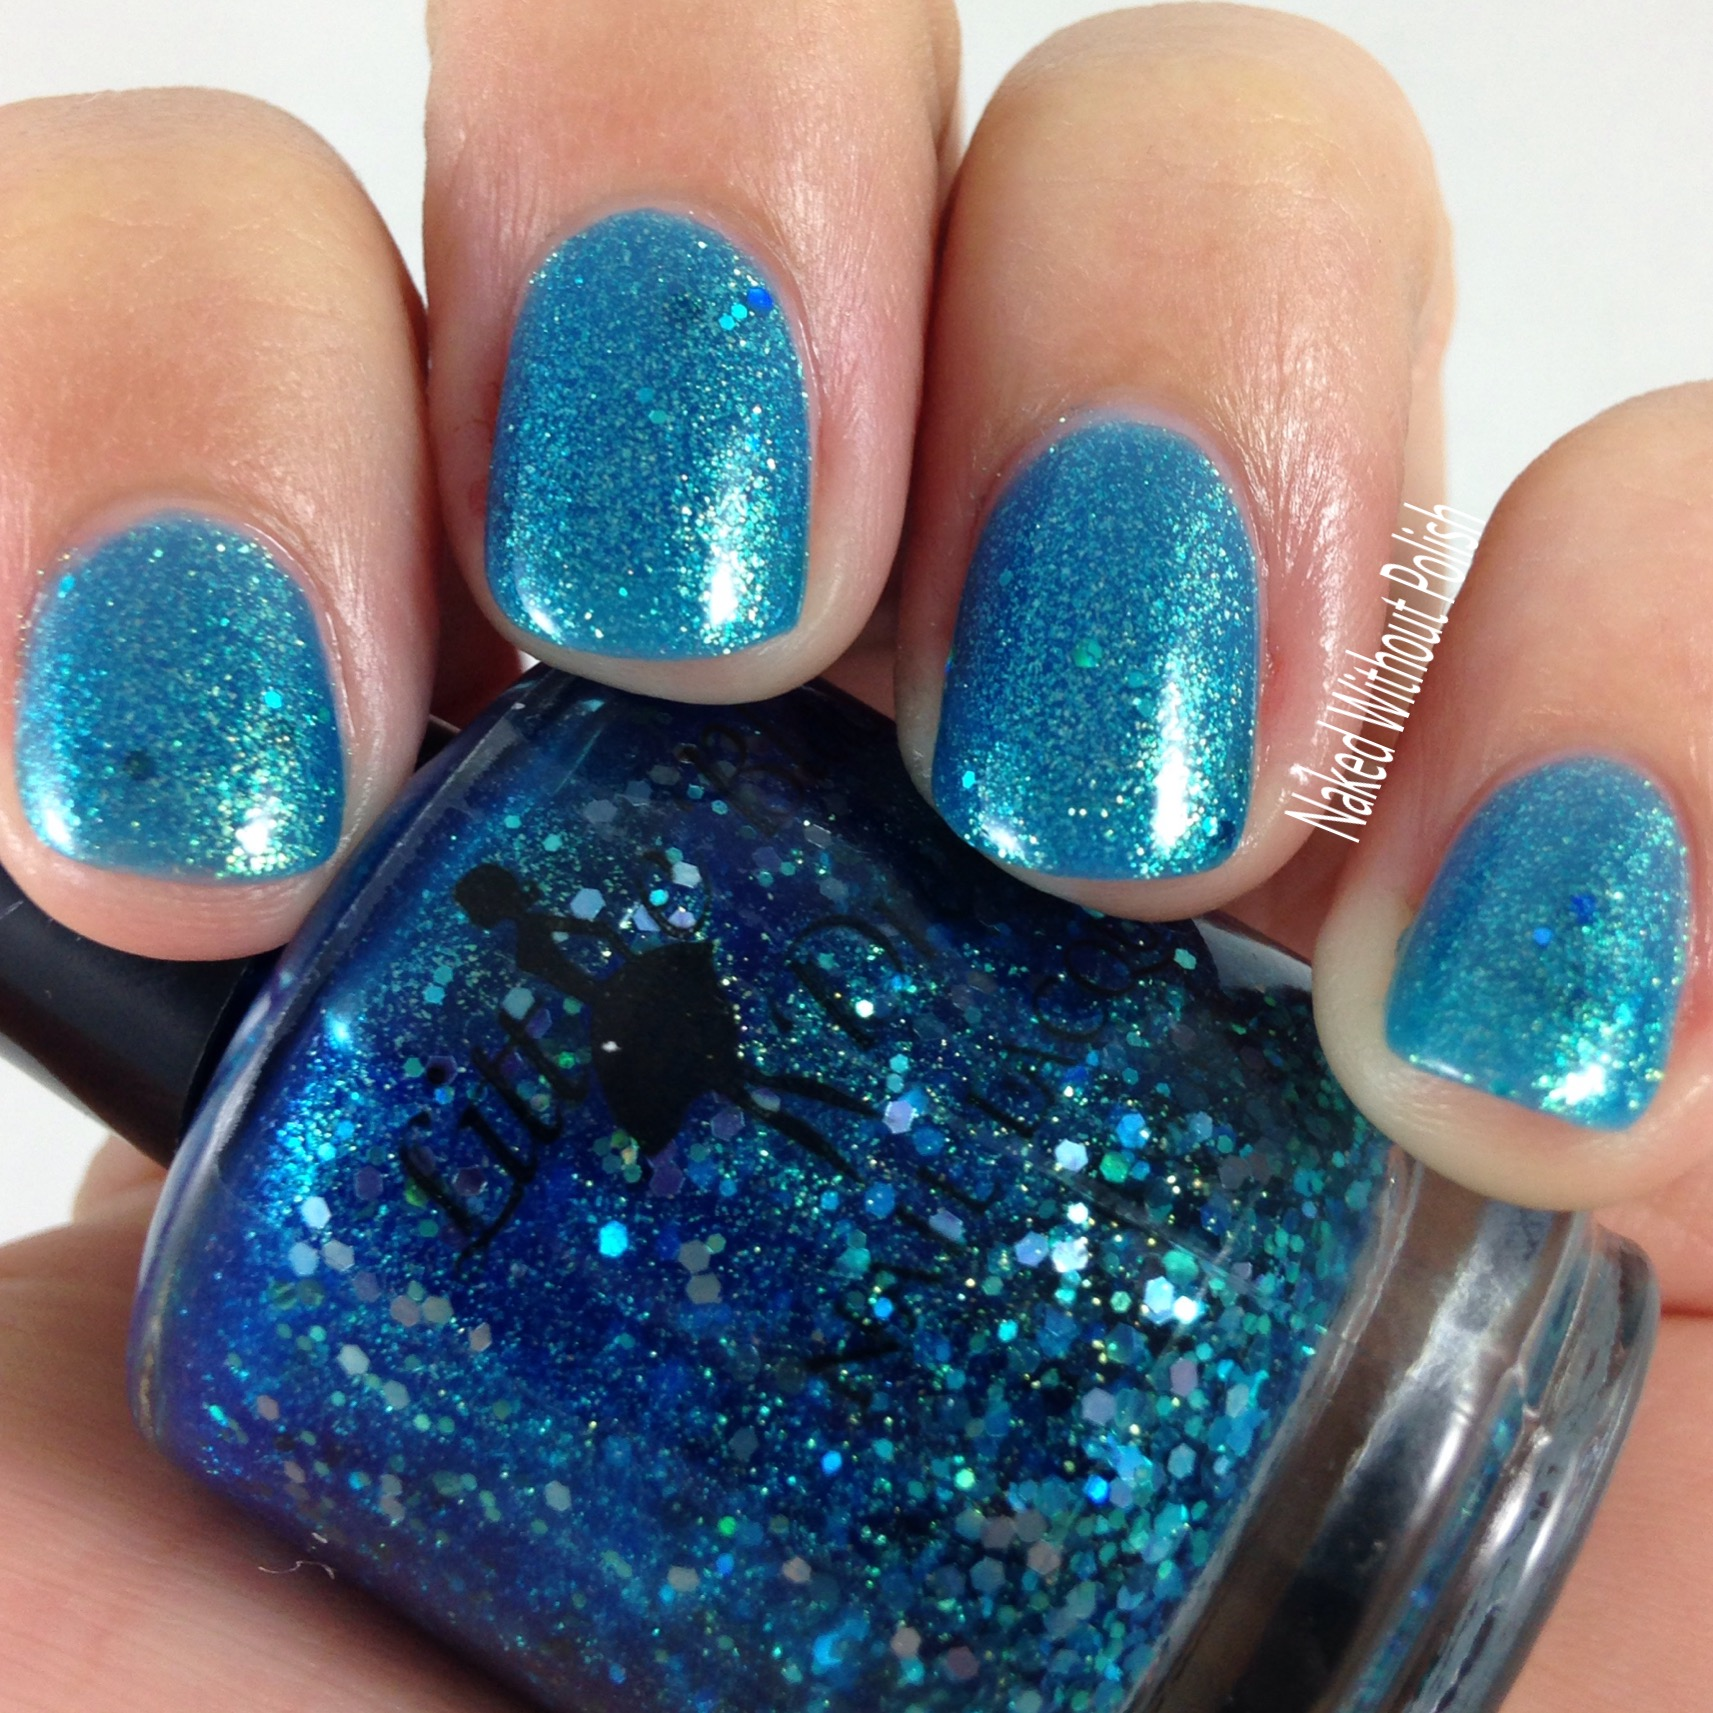 Little-Black-Dress-Nail-Lacquer-Mermaids-Lair-6